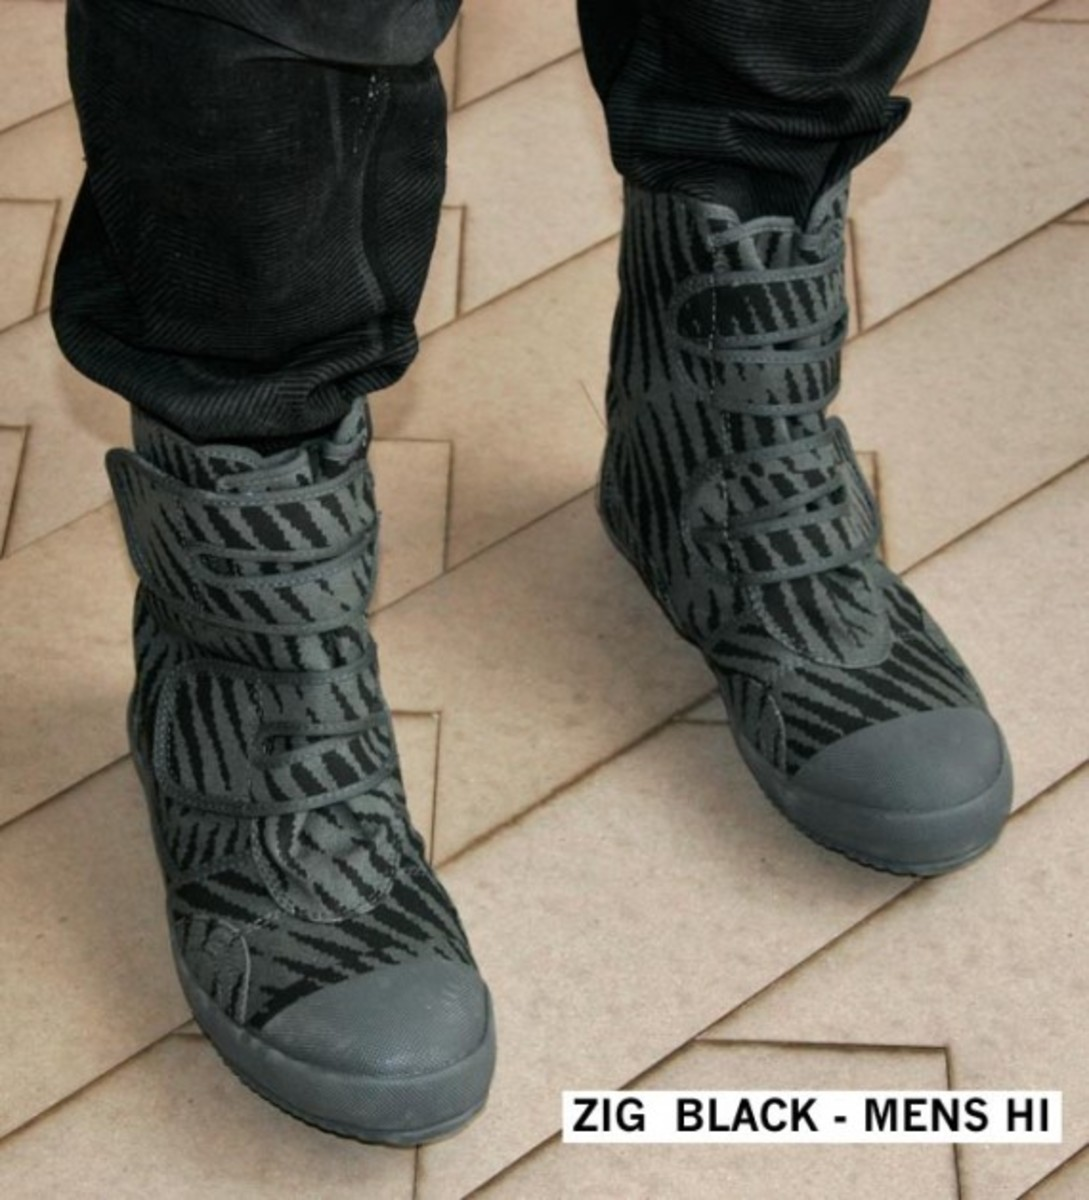 salvor_projects_steel_toe_work_boots_1